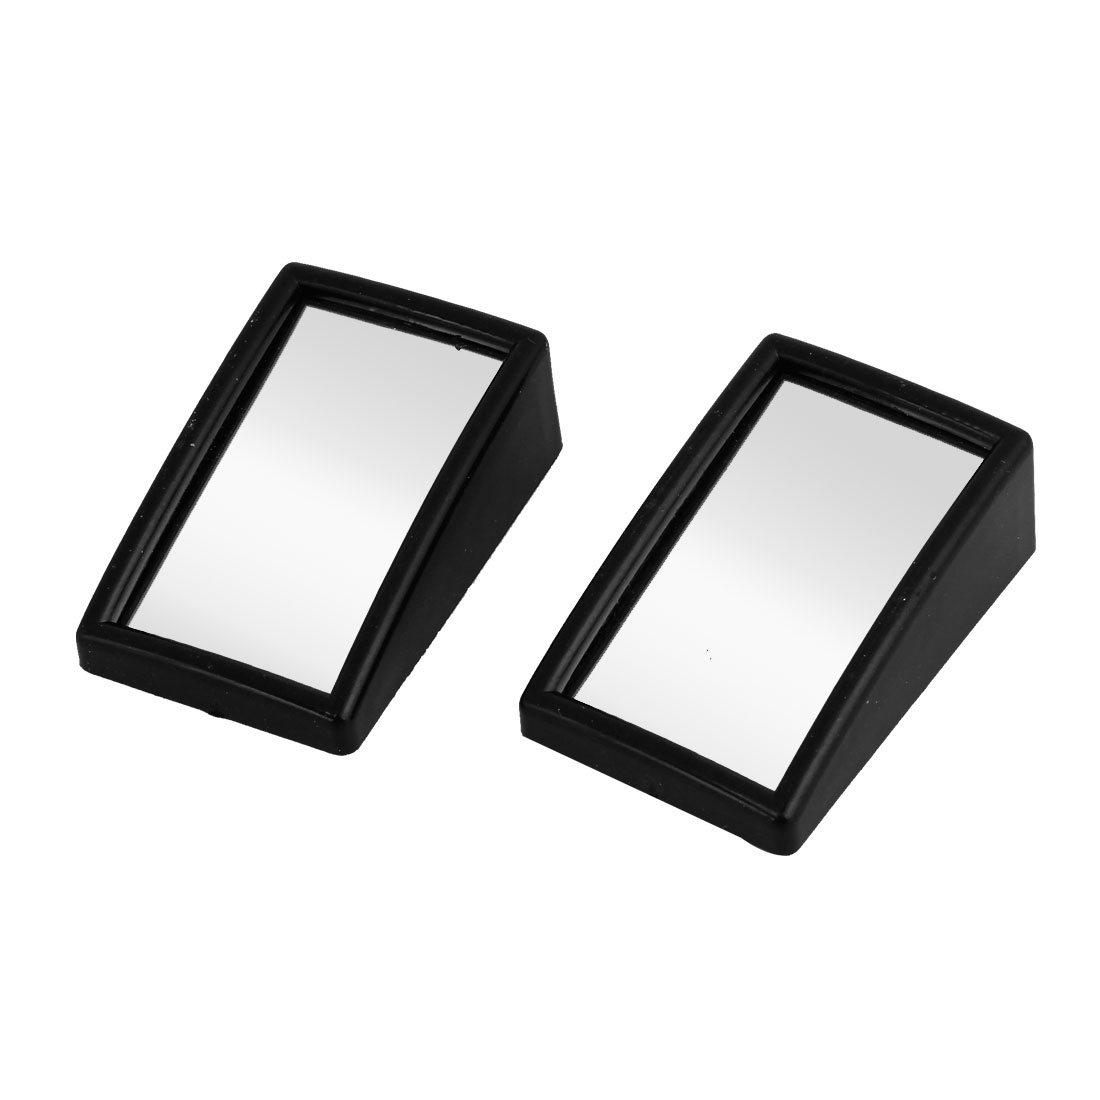 2 Pcs Black Housing Rectangular Safety Rear View Blind Spot Mirror for Vehicle Car